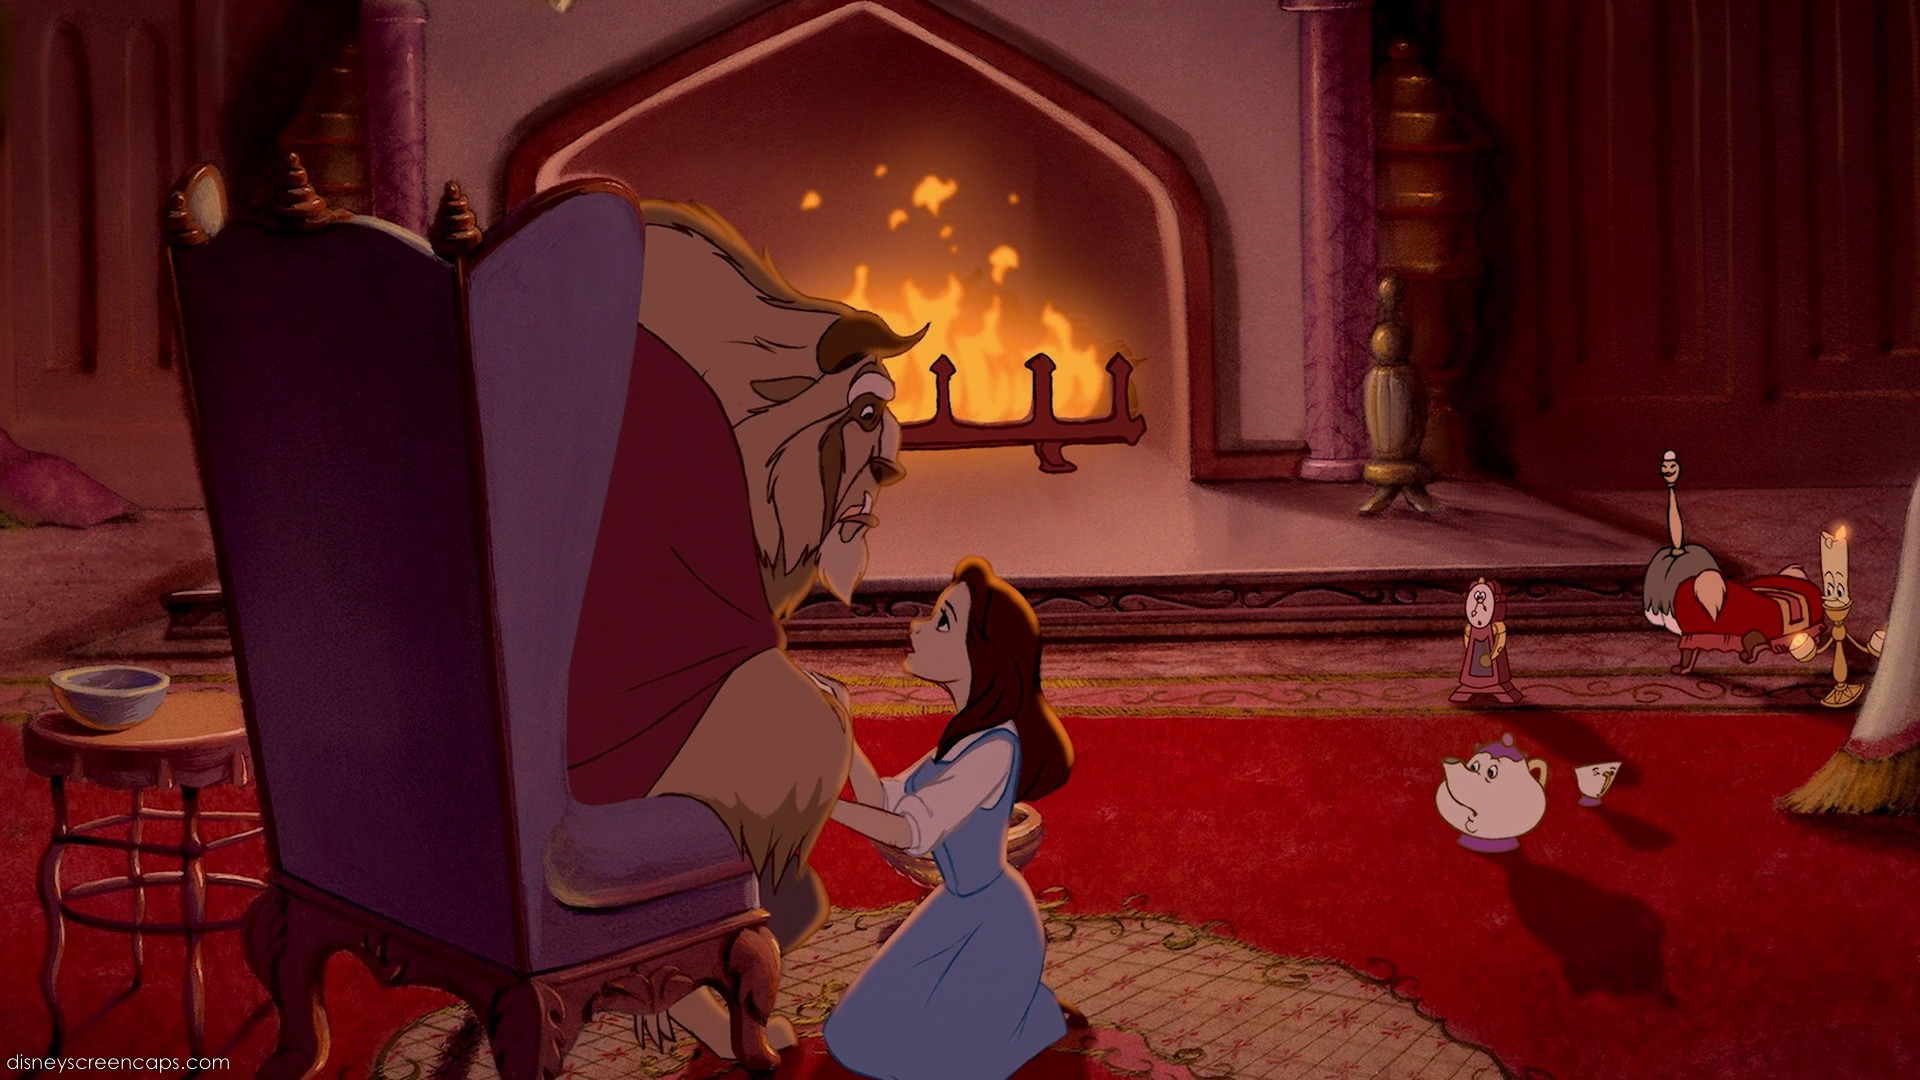 Beauty And The Beast Pretty Much Is Only Disney Movie That Relates To Me